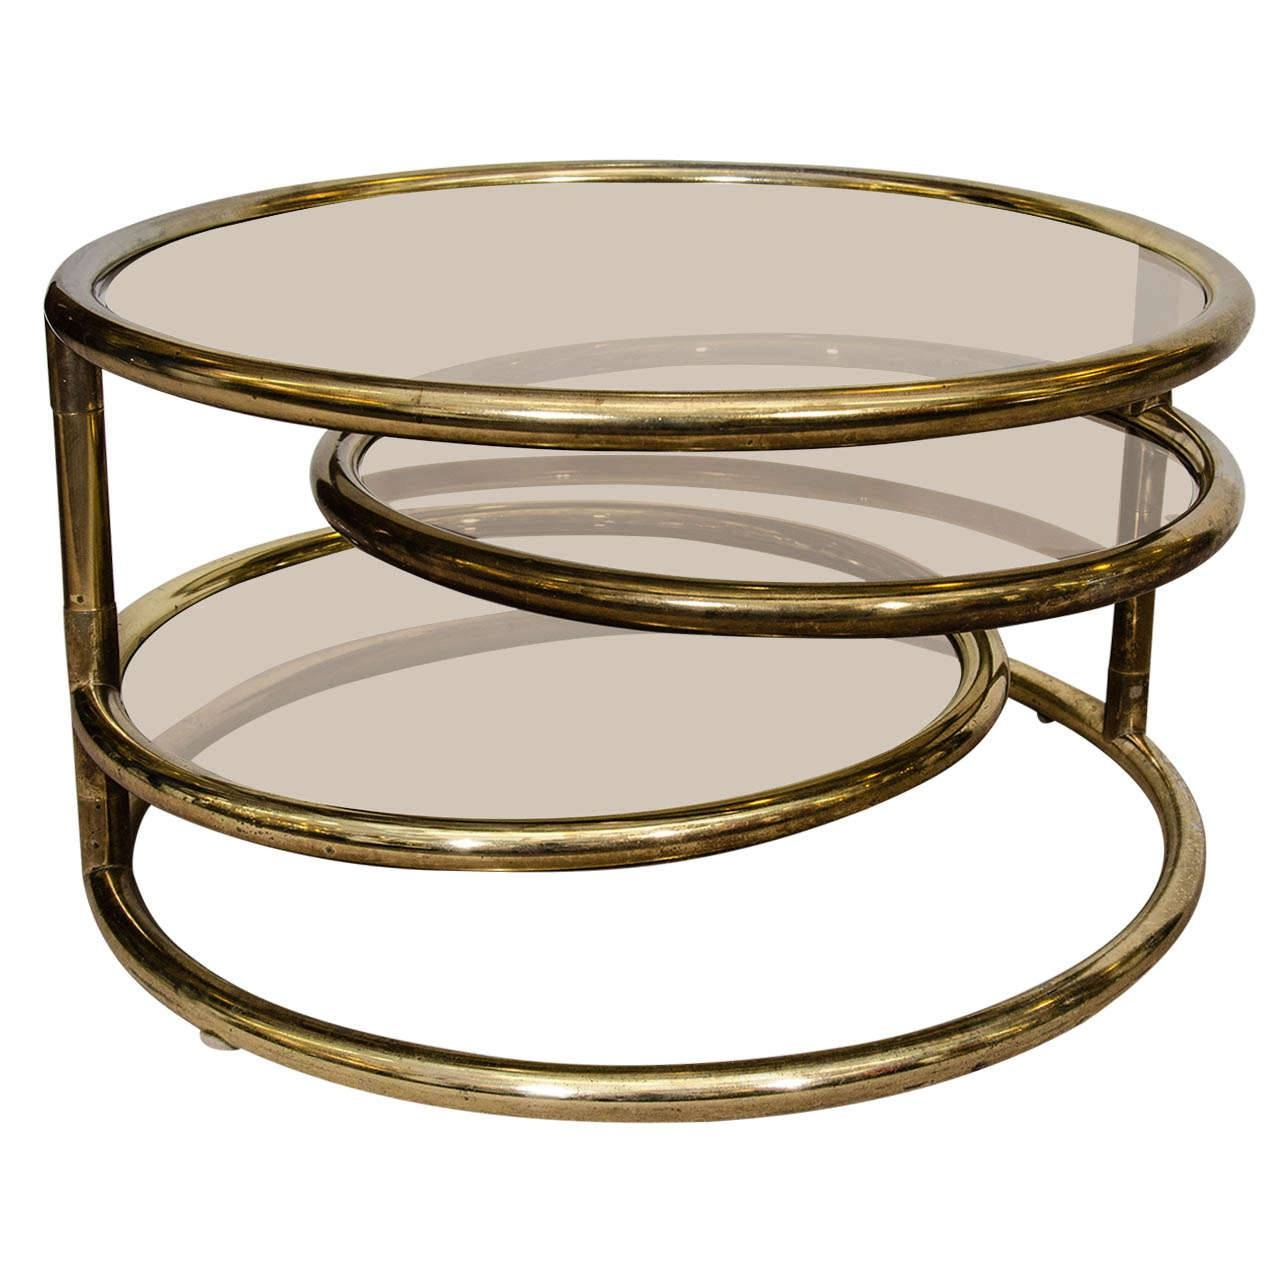 Table. Milo Baughman Coffee Table - Home Interior Design inside Round Swivel Coffee Tables (Image 27 of 30)